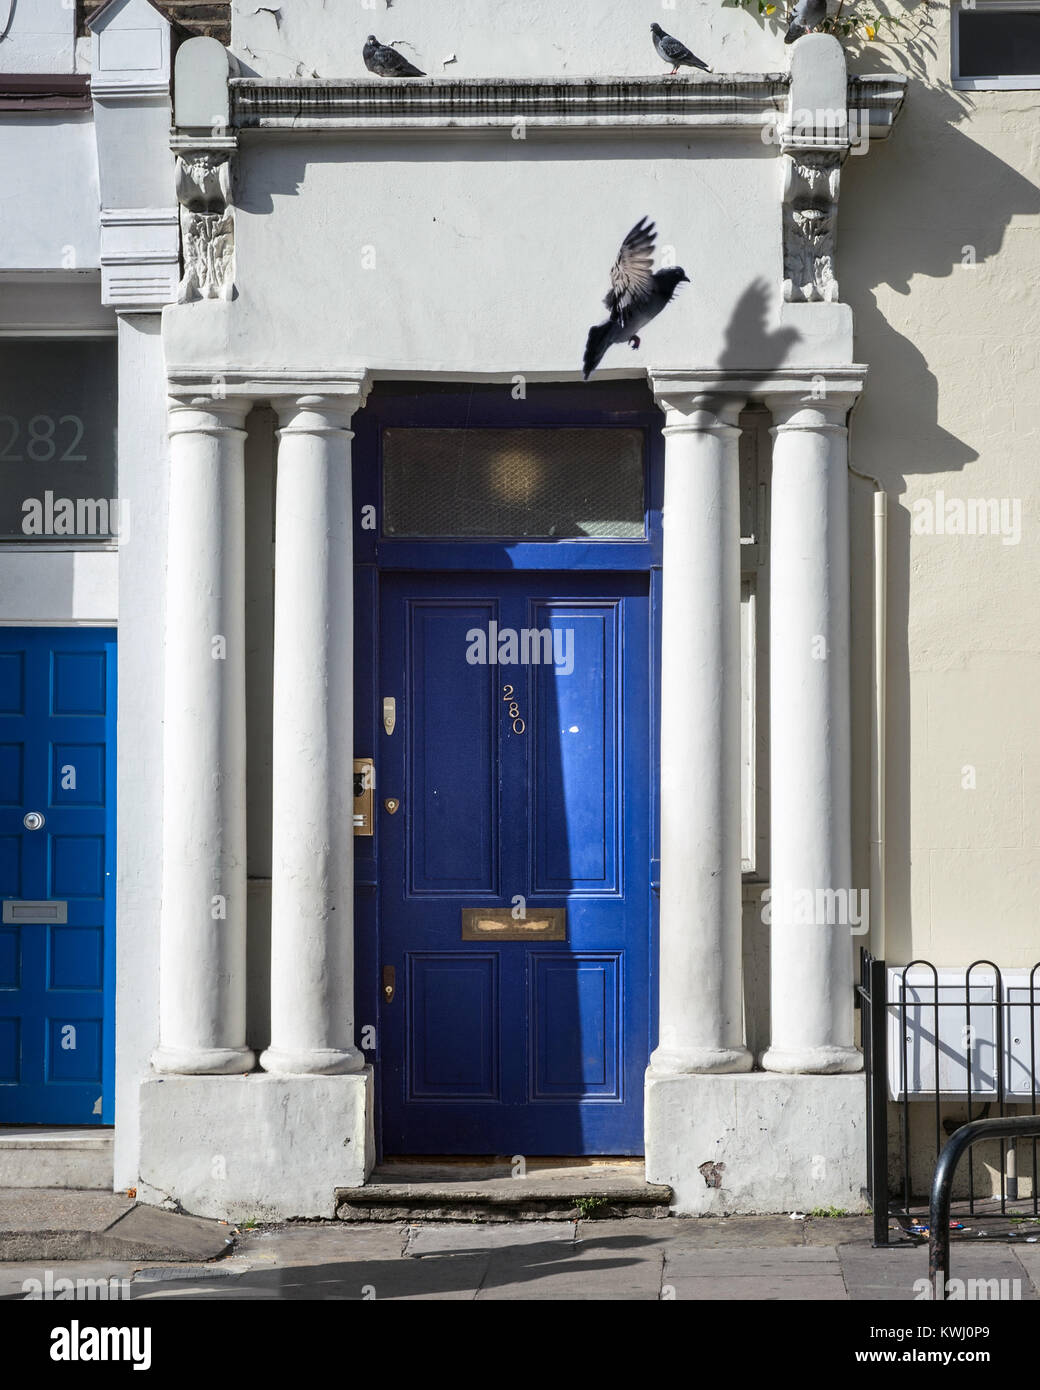 The Blue Door from the film 'Notting Hill' - Stock Image